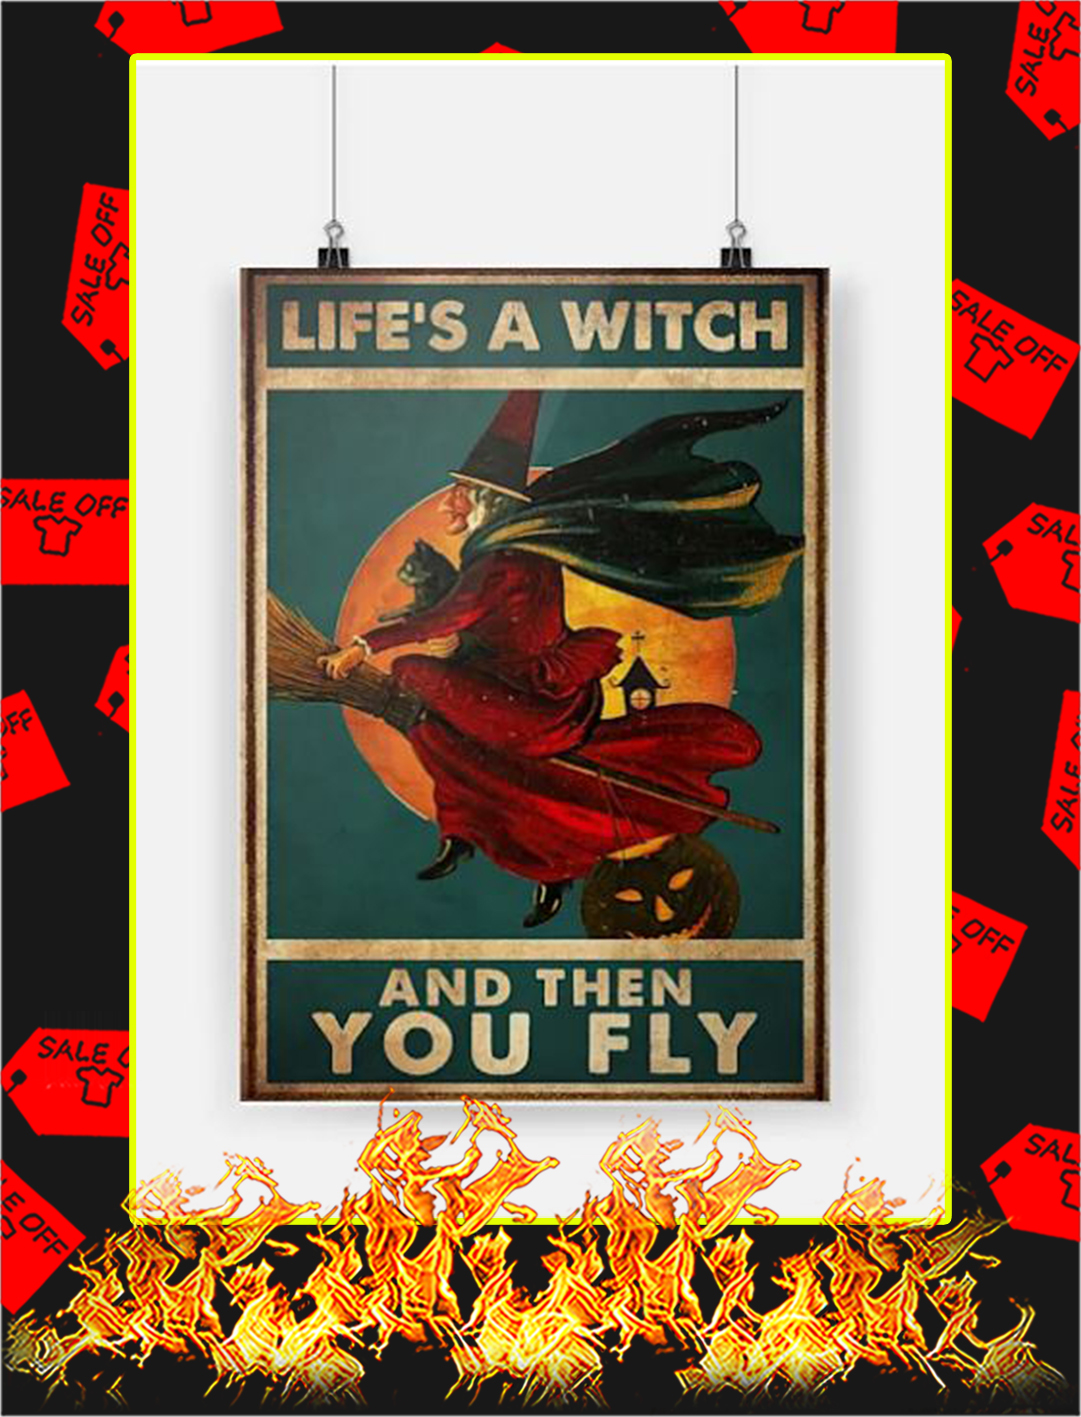 Life's a witch and then you fly poster - A1